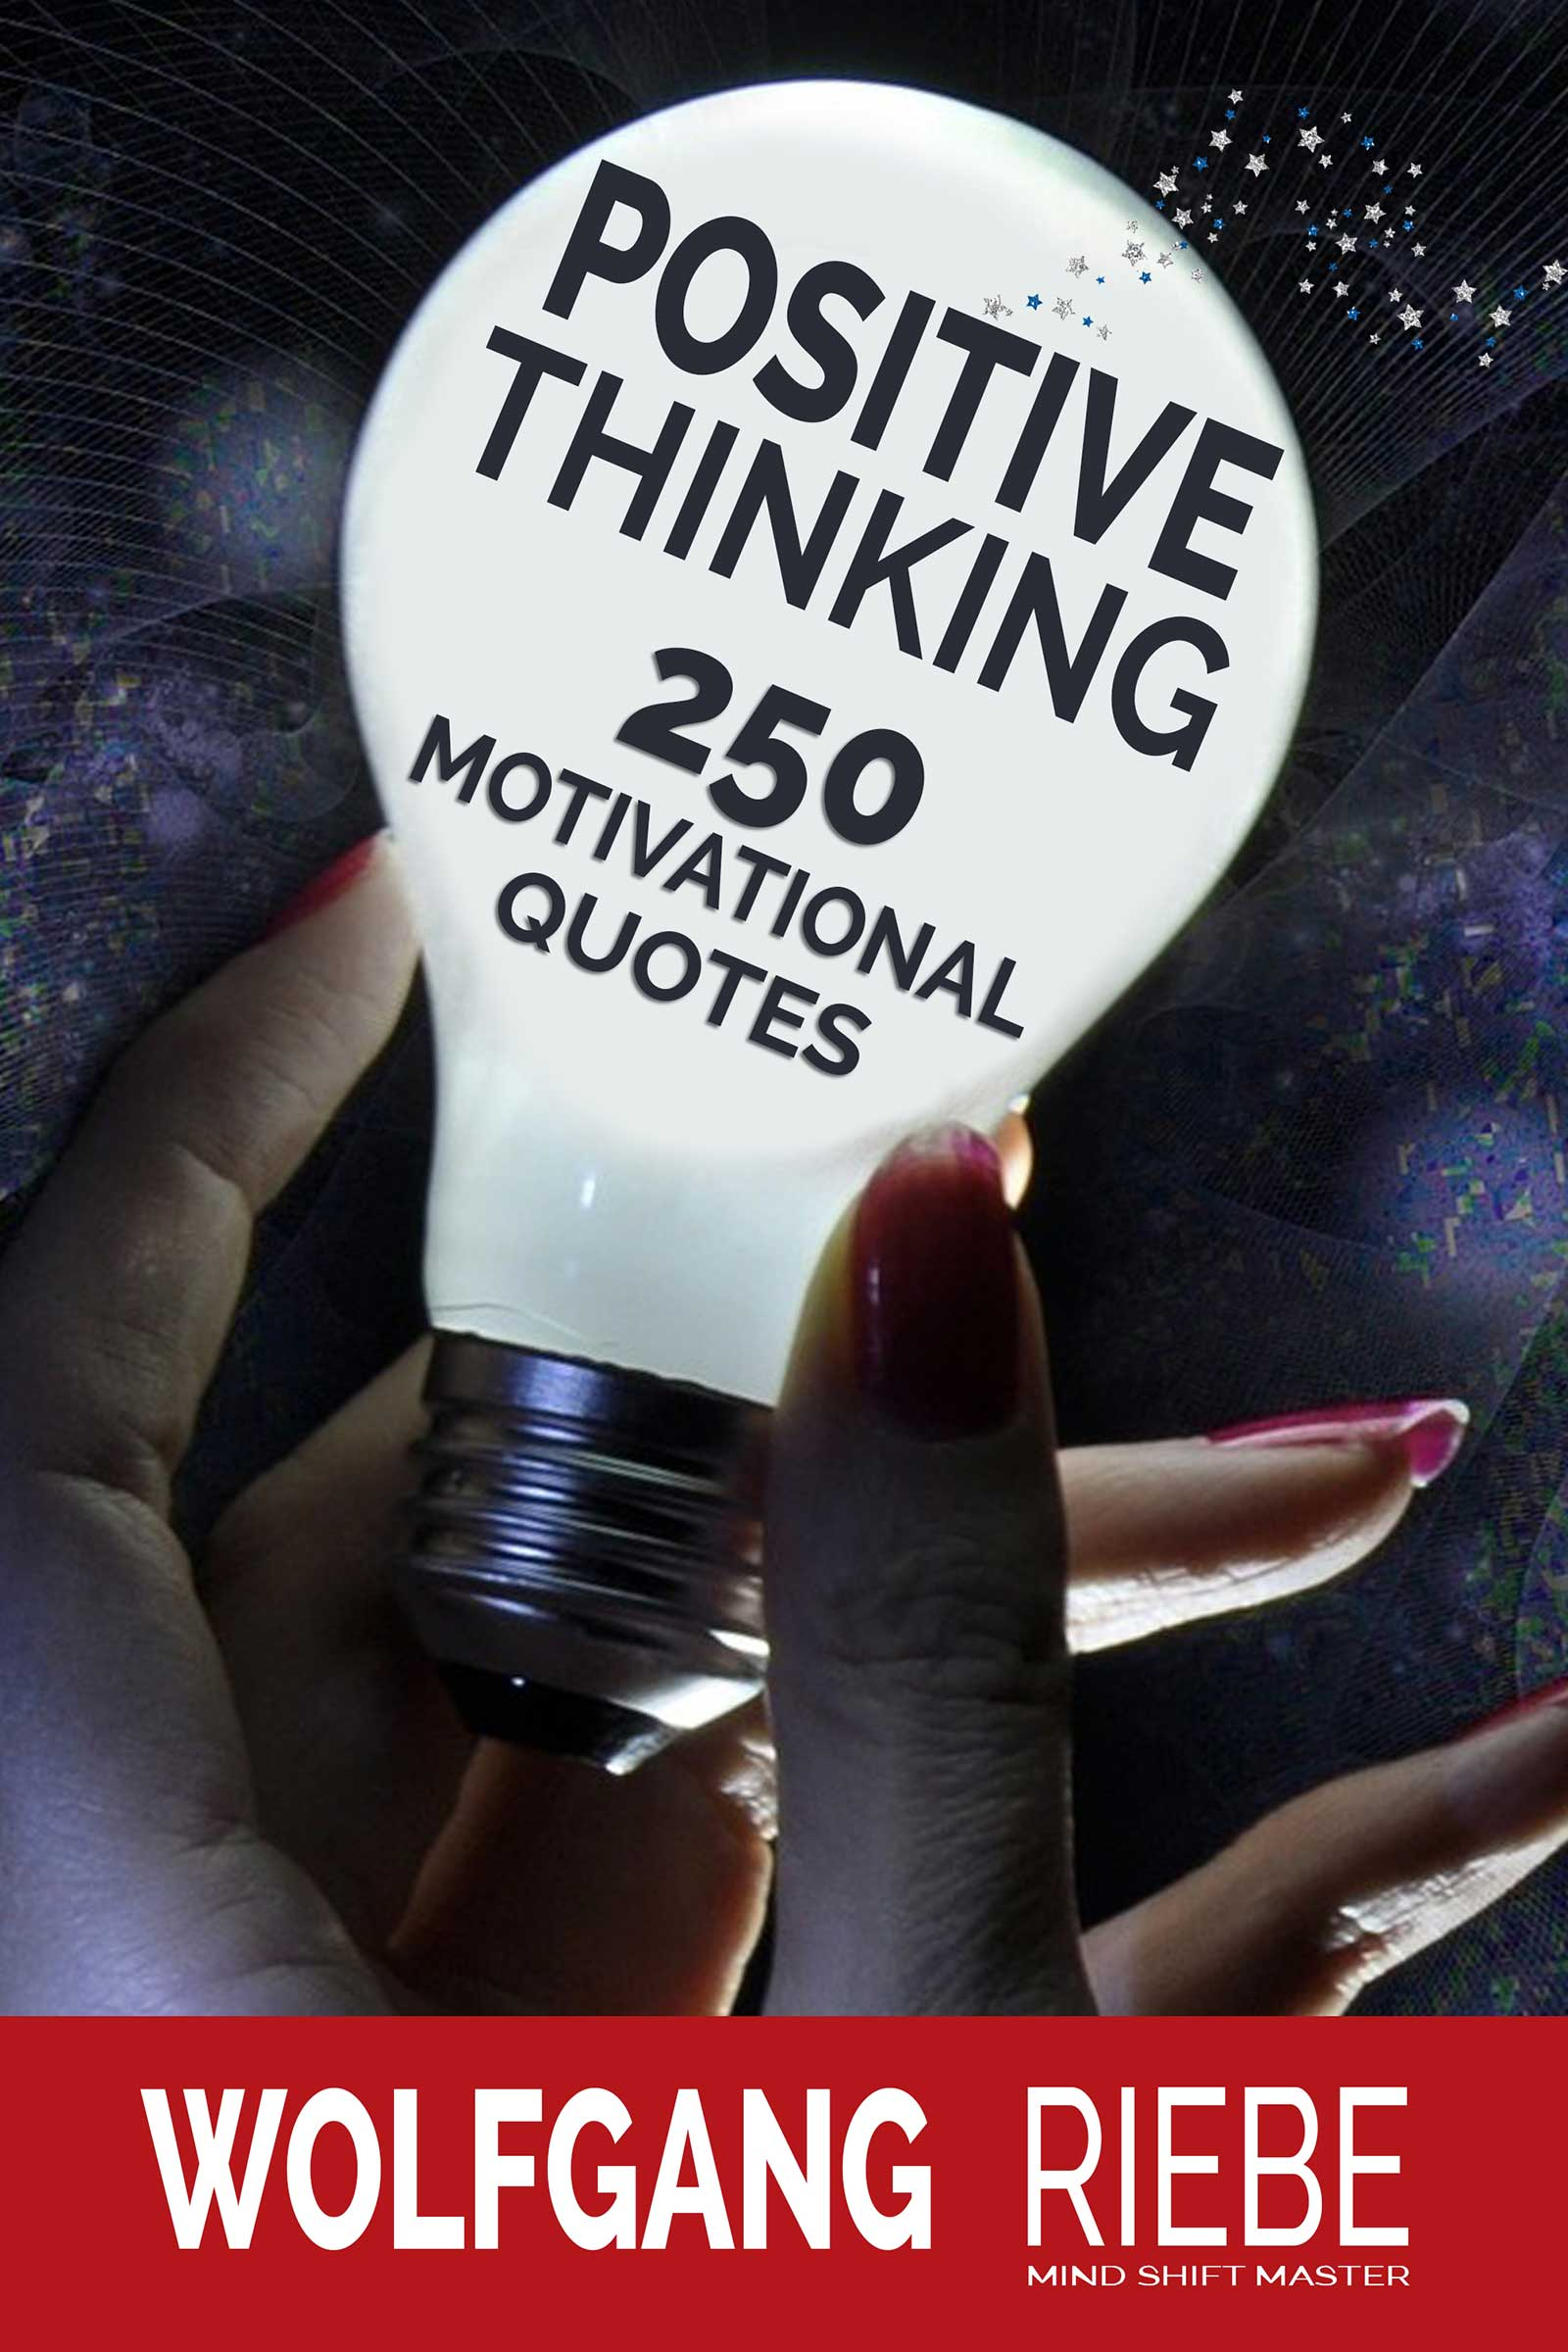 Positive Thinking: 250 Motivational Quotes, an Ebook by Wolfgang Riebe